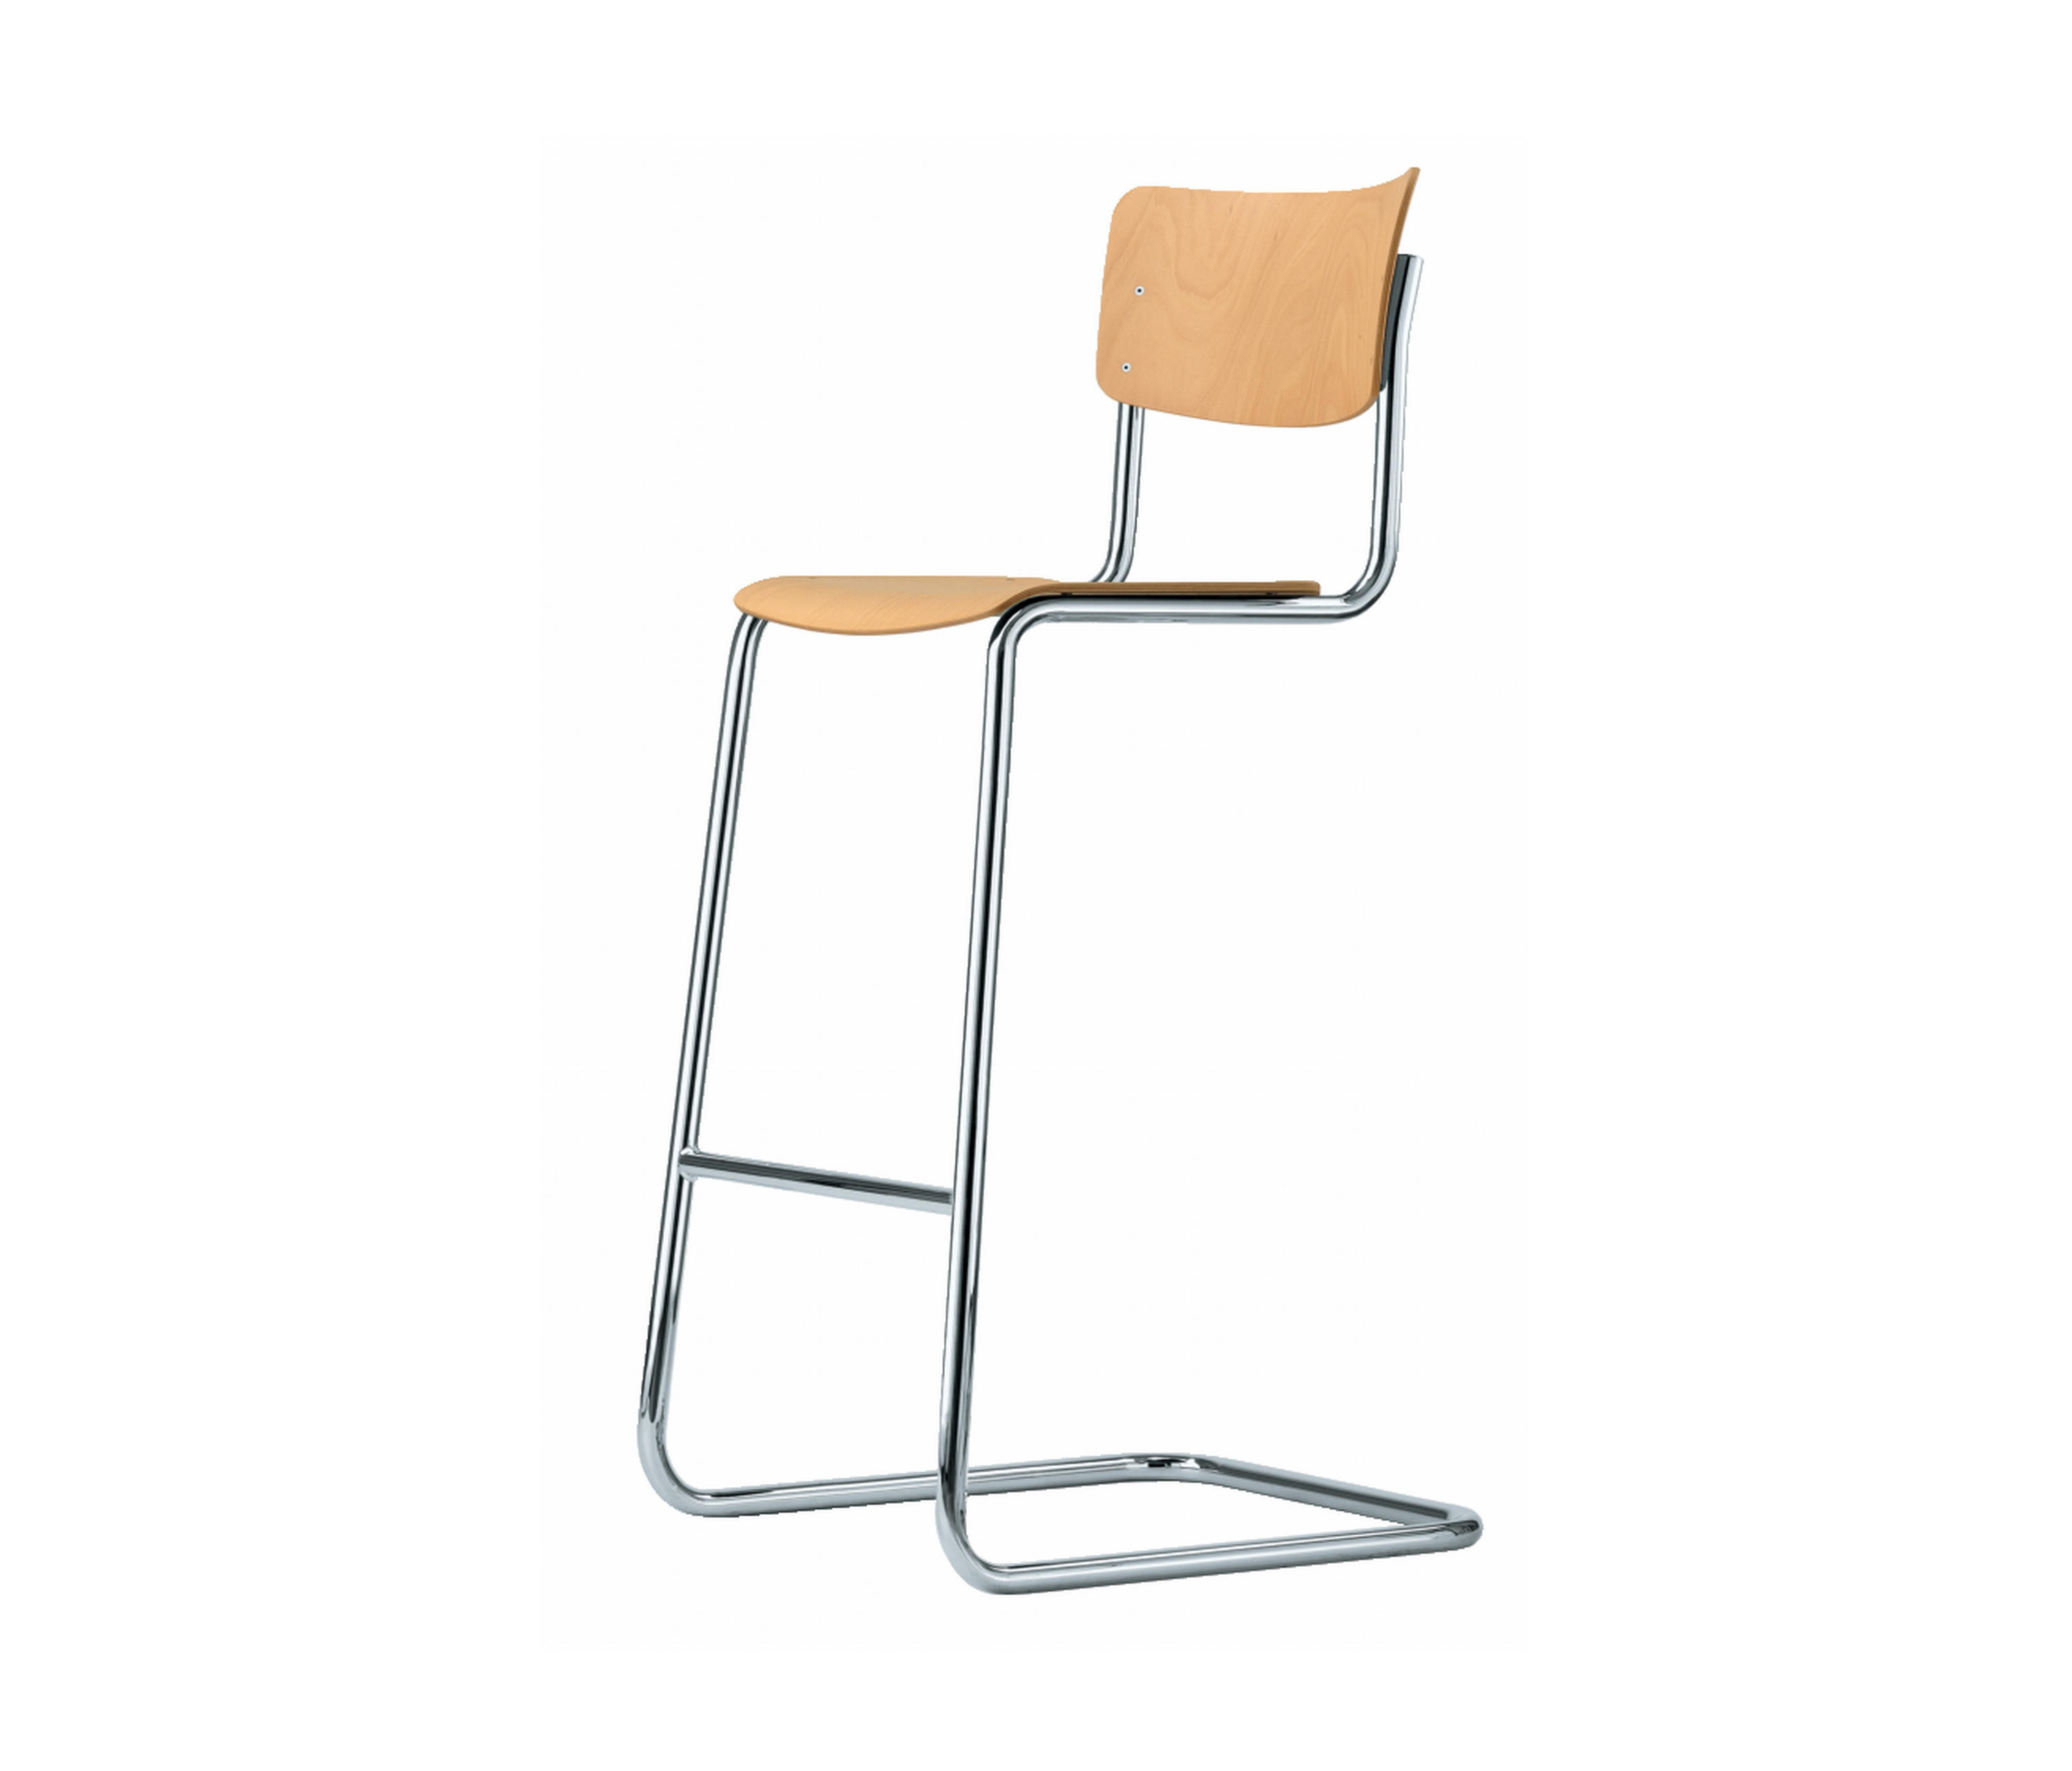 S 43 h barhocker von thonet architonic for Thonet barhocker